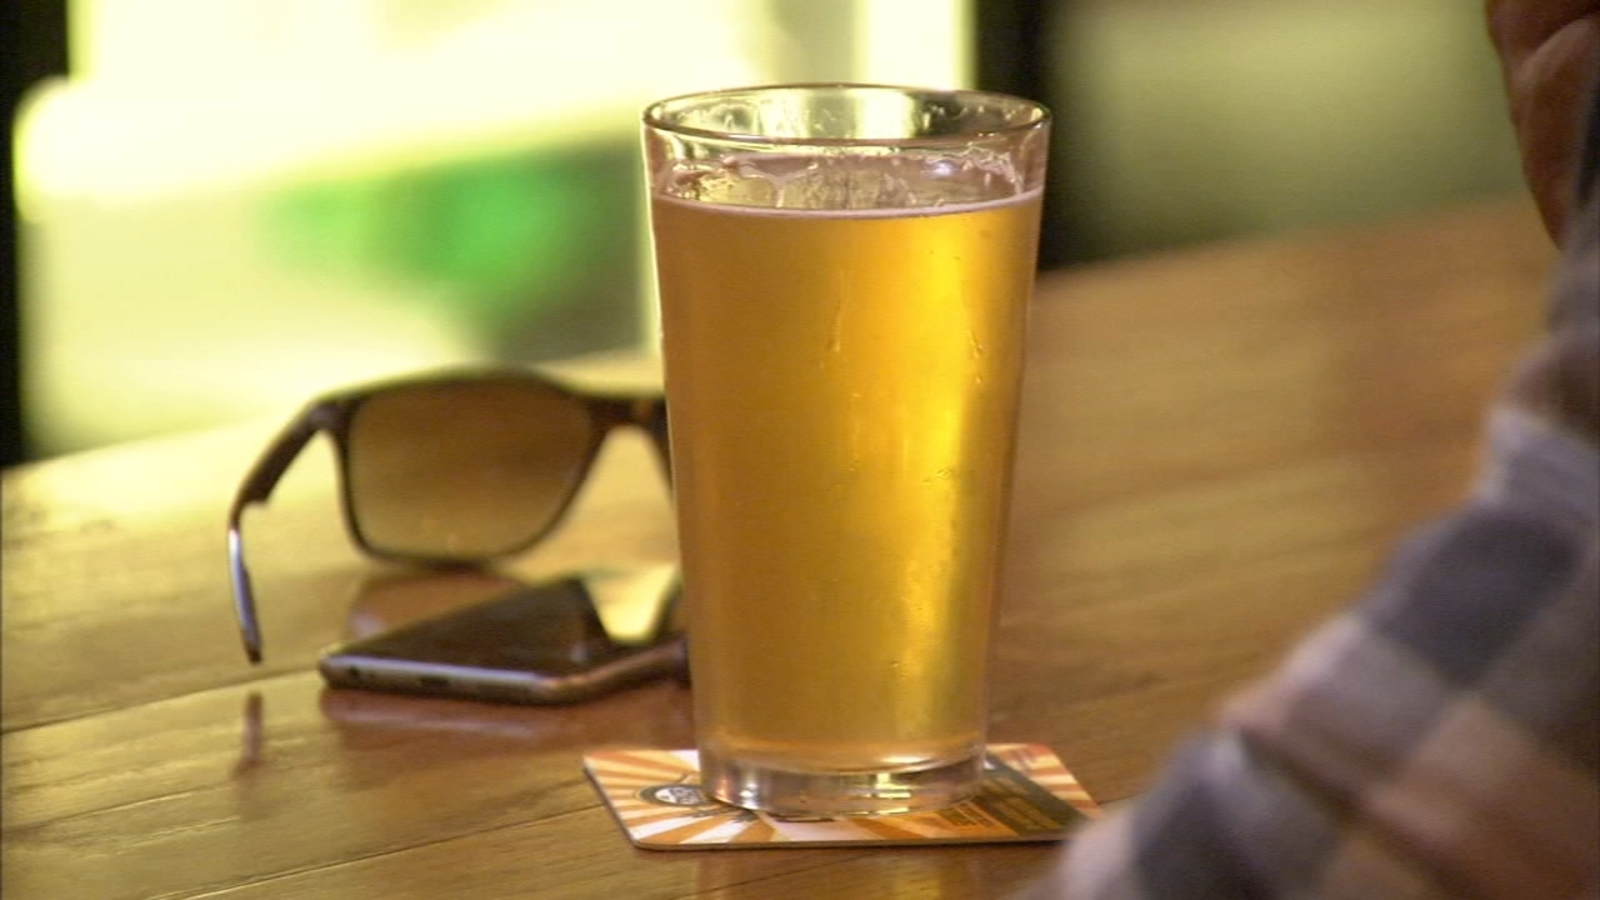 Fresno now has an official Craft Beer Week